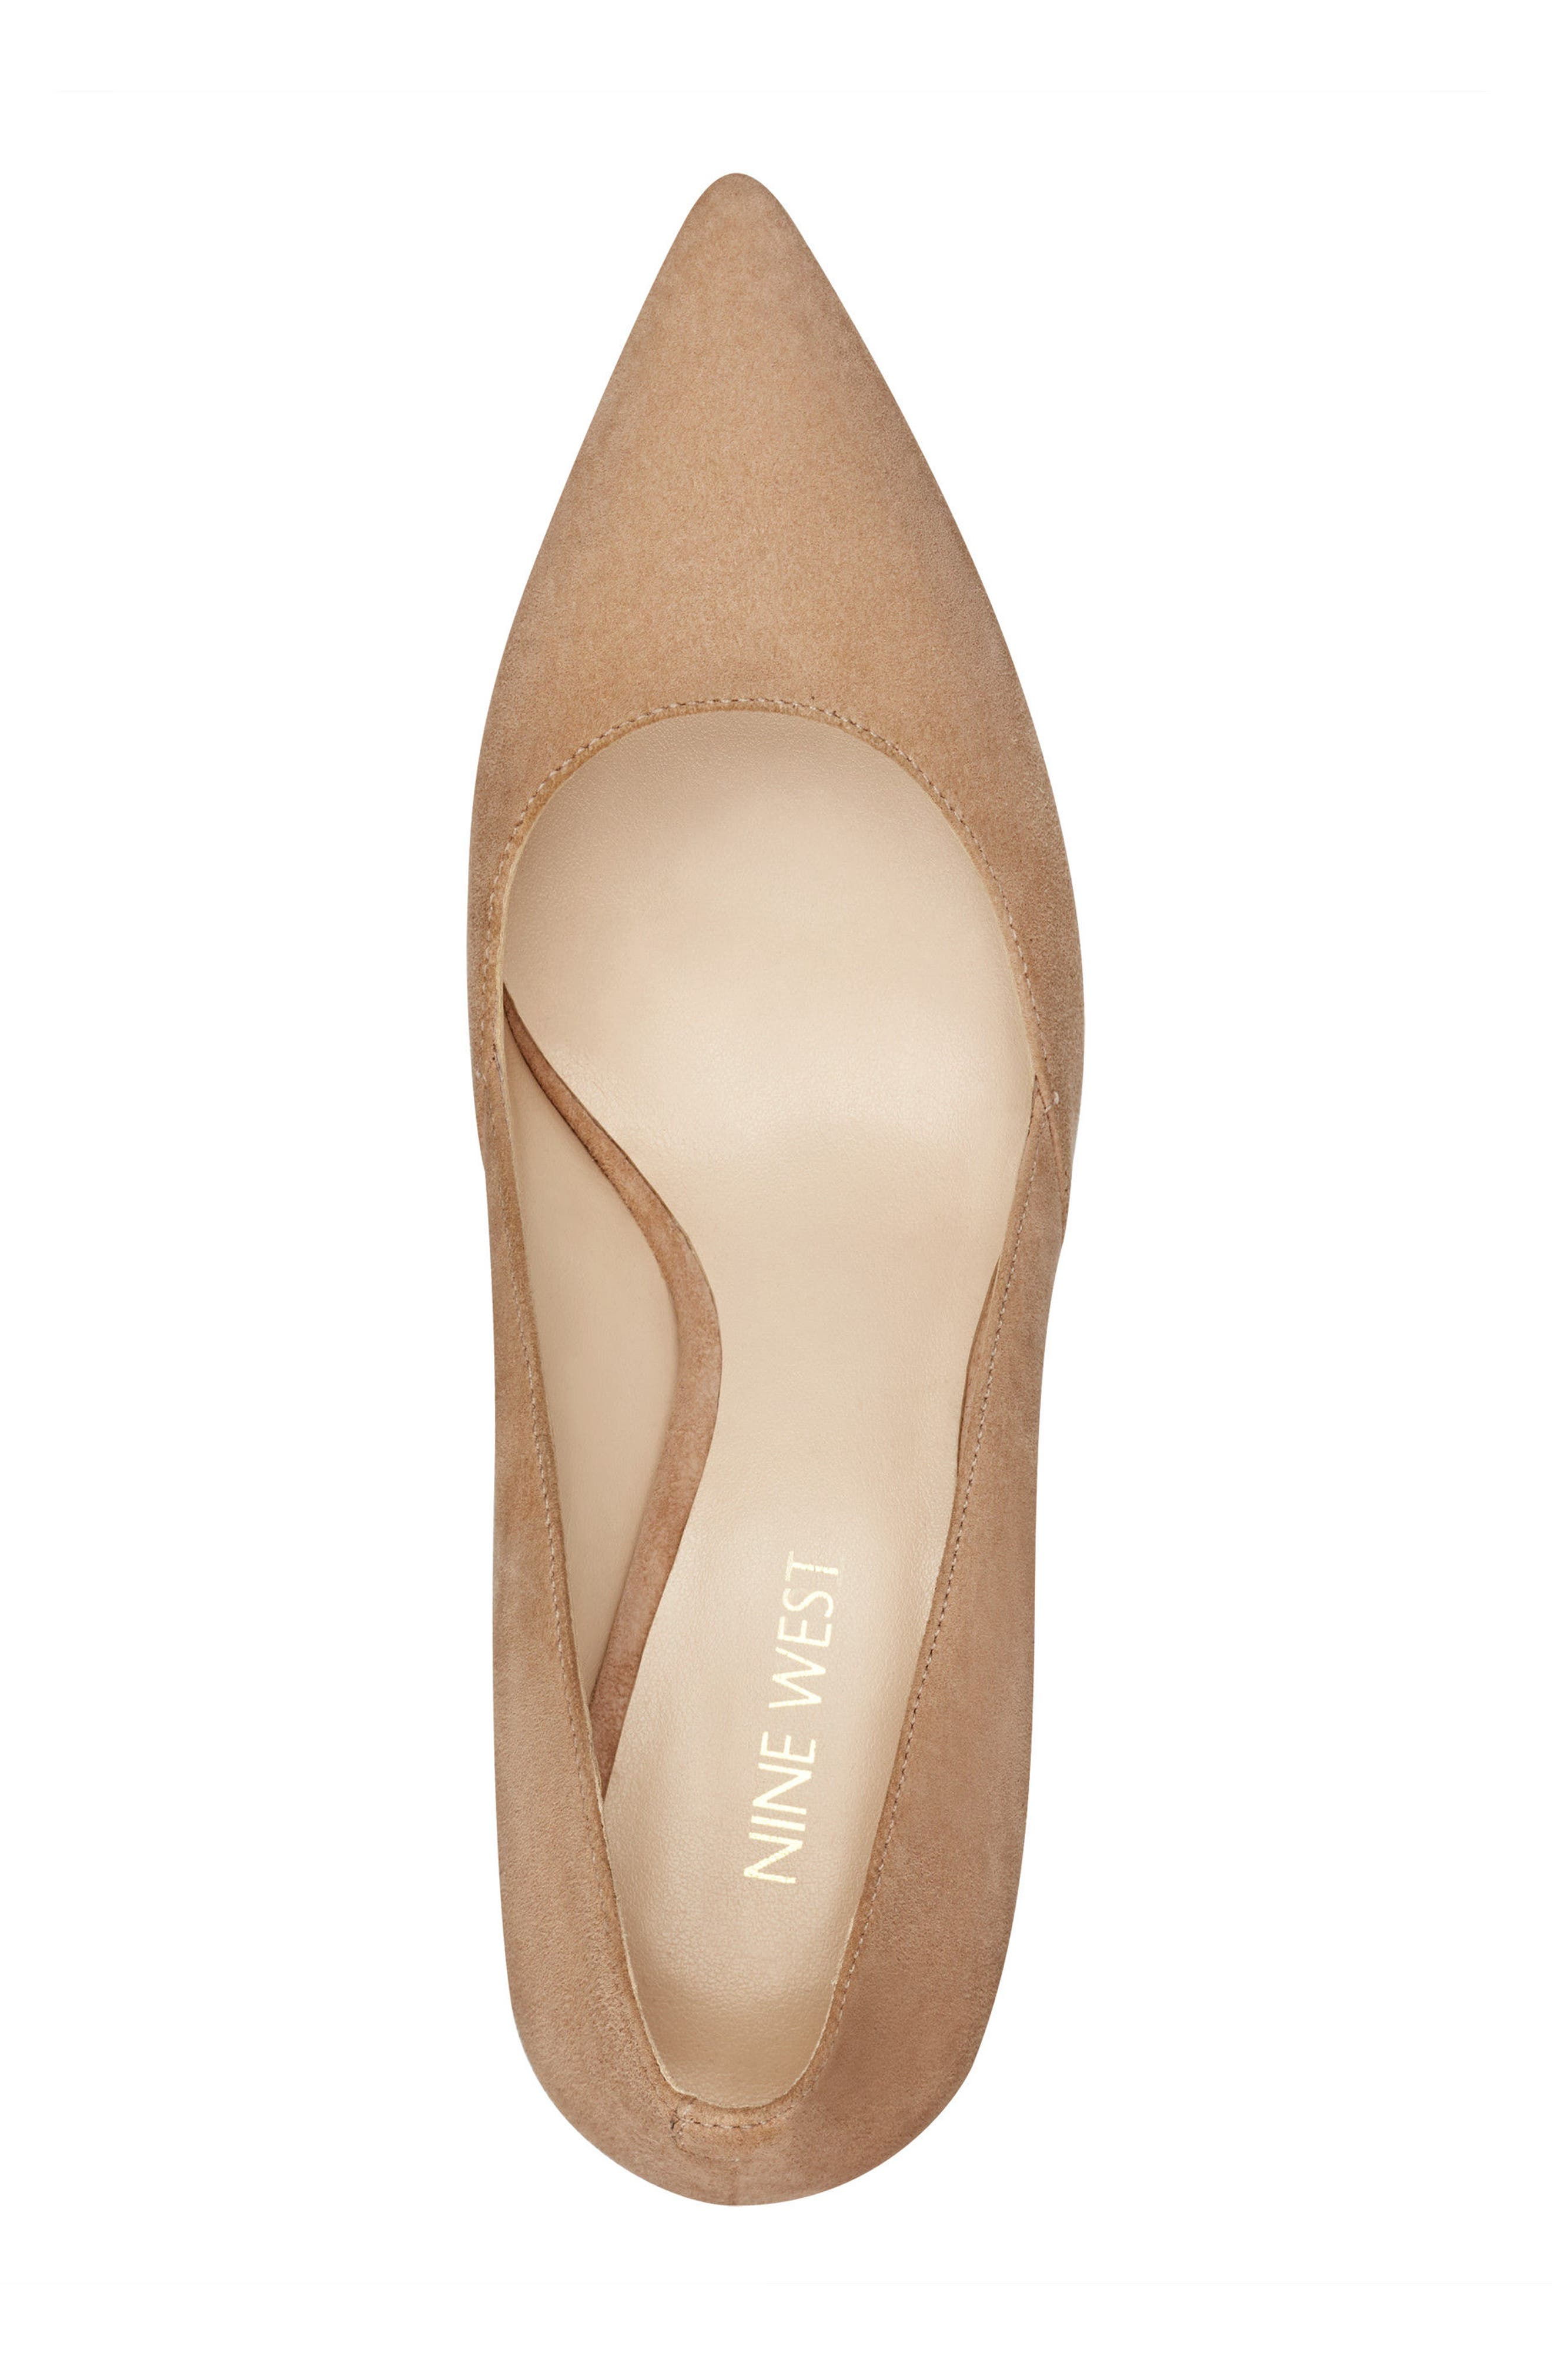 Mine Pointy Toe Pump,                             Alternate thumbnail 5, color,                             Light Natural Suede